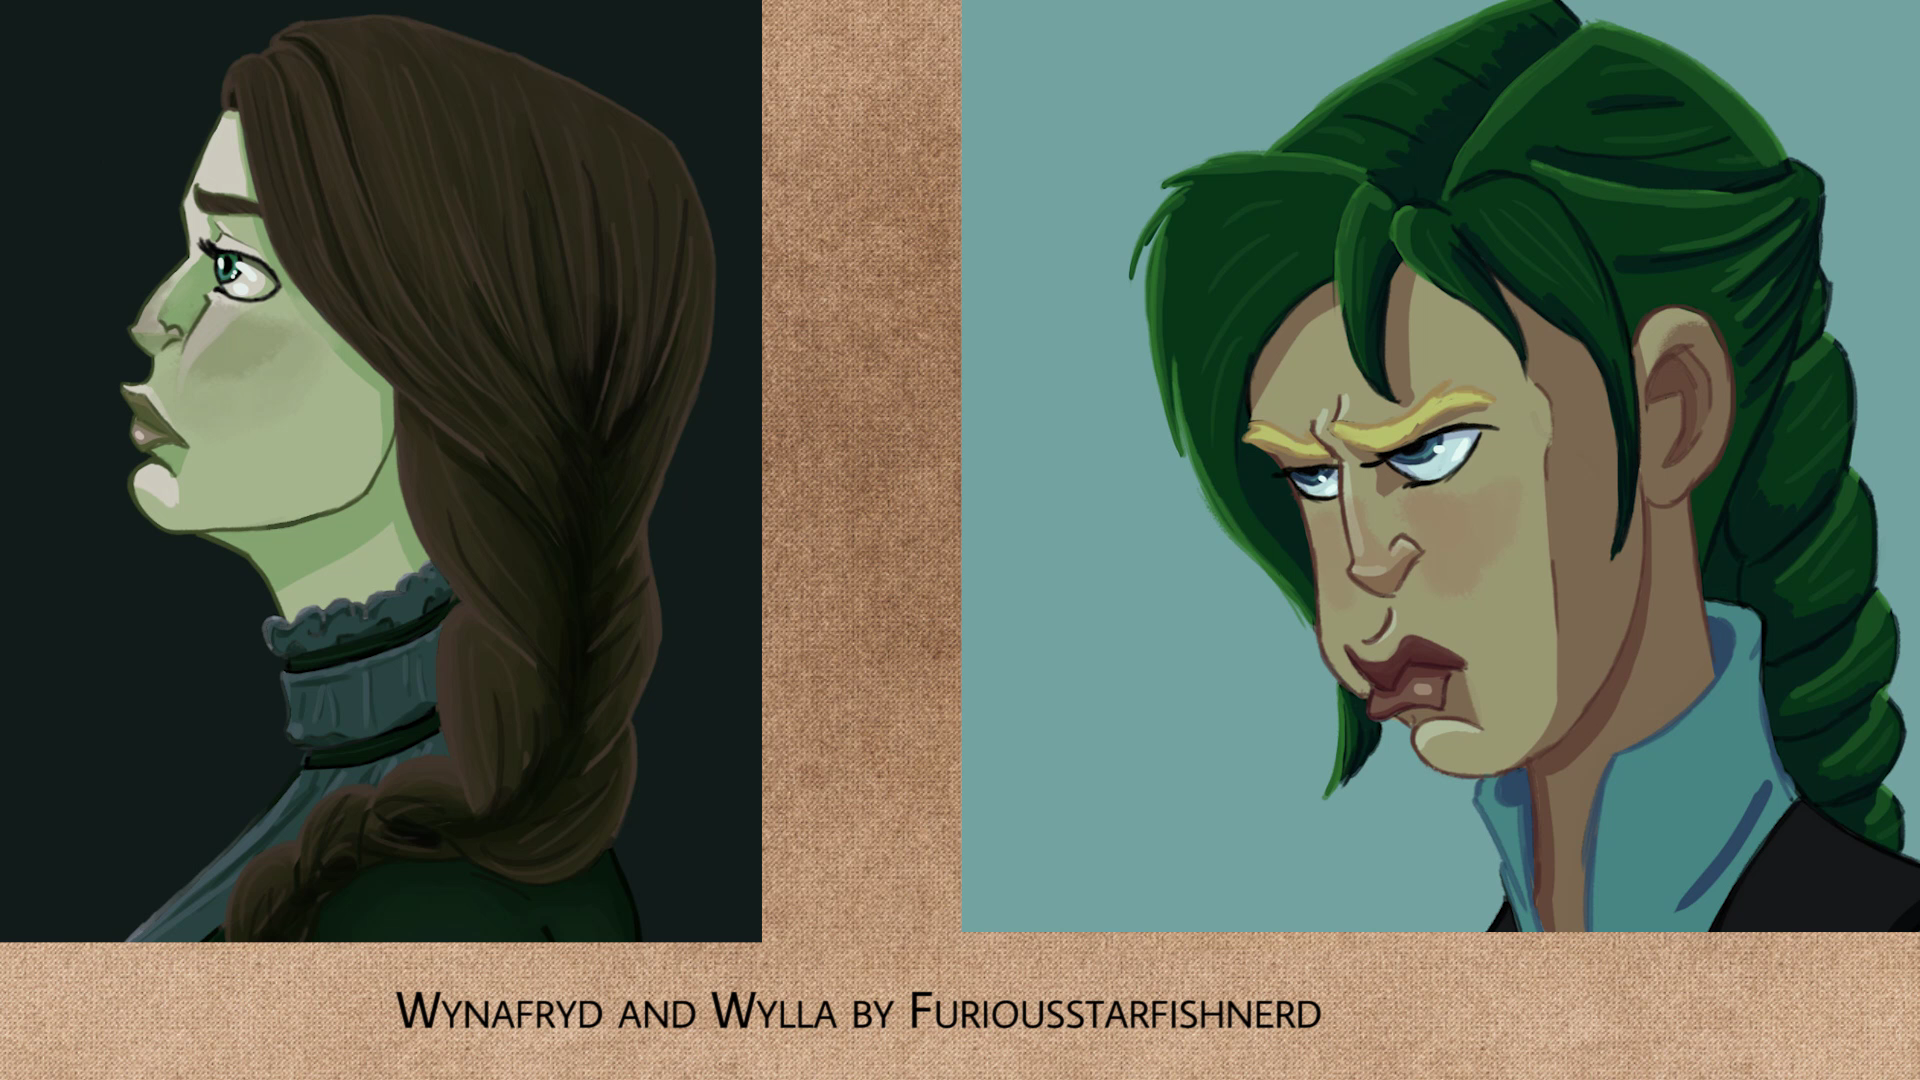 Wynafyrd and Wylla by furiousstarfishnerd